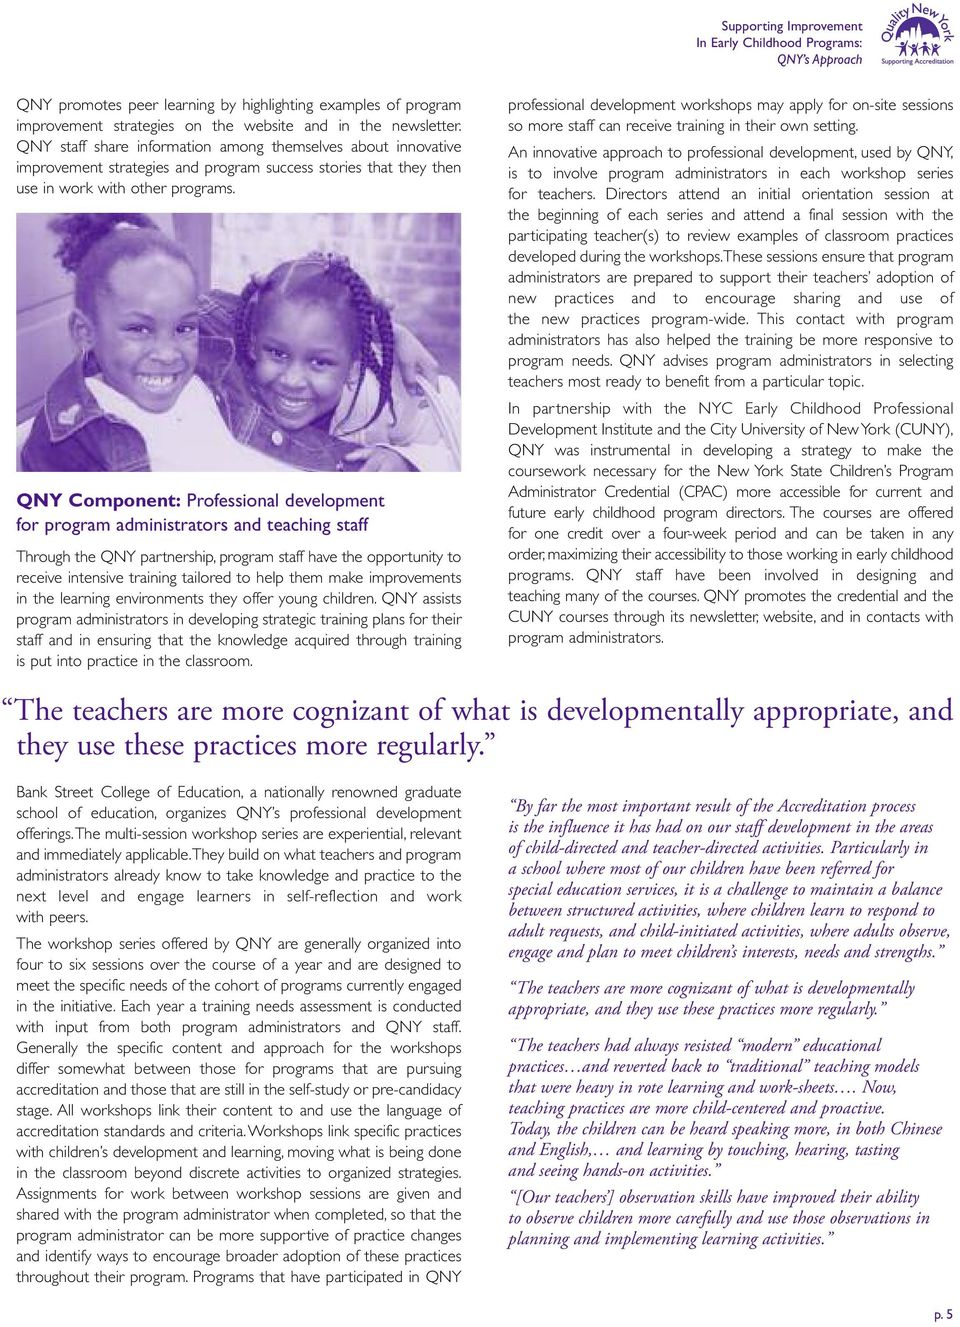 QNY Component: Professional development for program administrators and teaching staff Through the QNY partnership, program staff have the opportunity to receive intensive training tailored to help